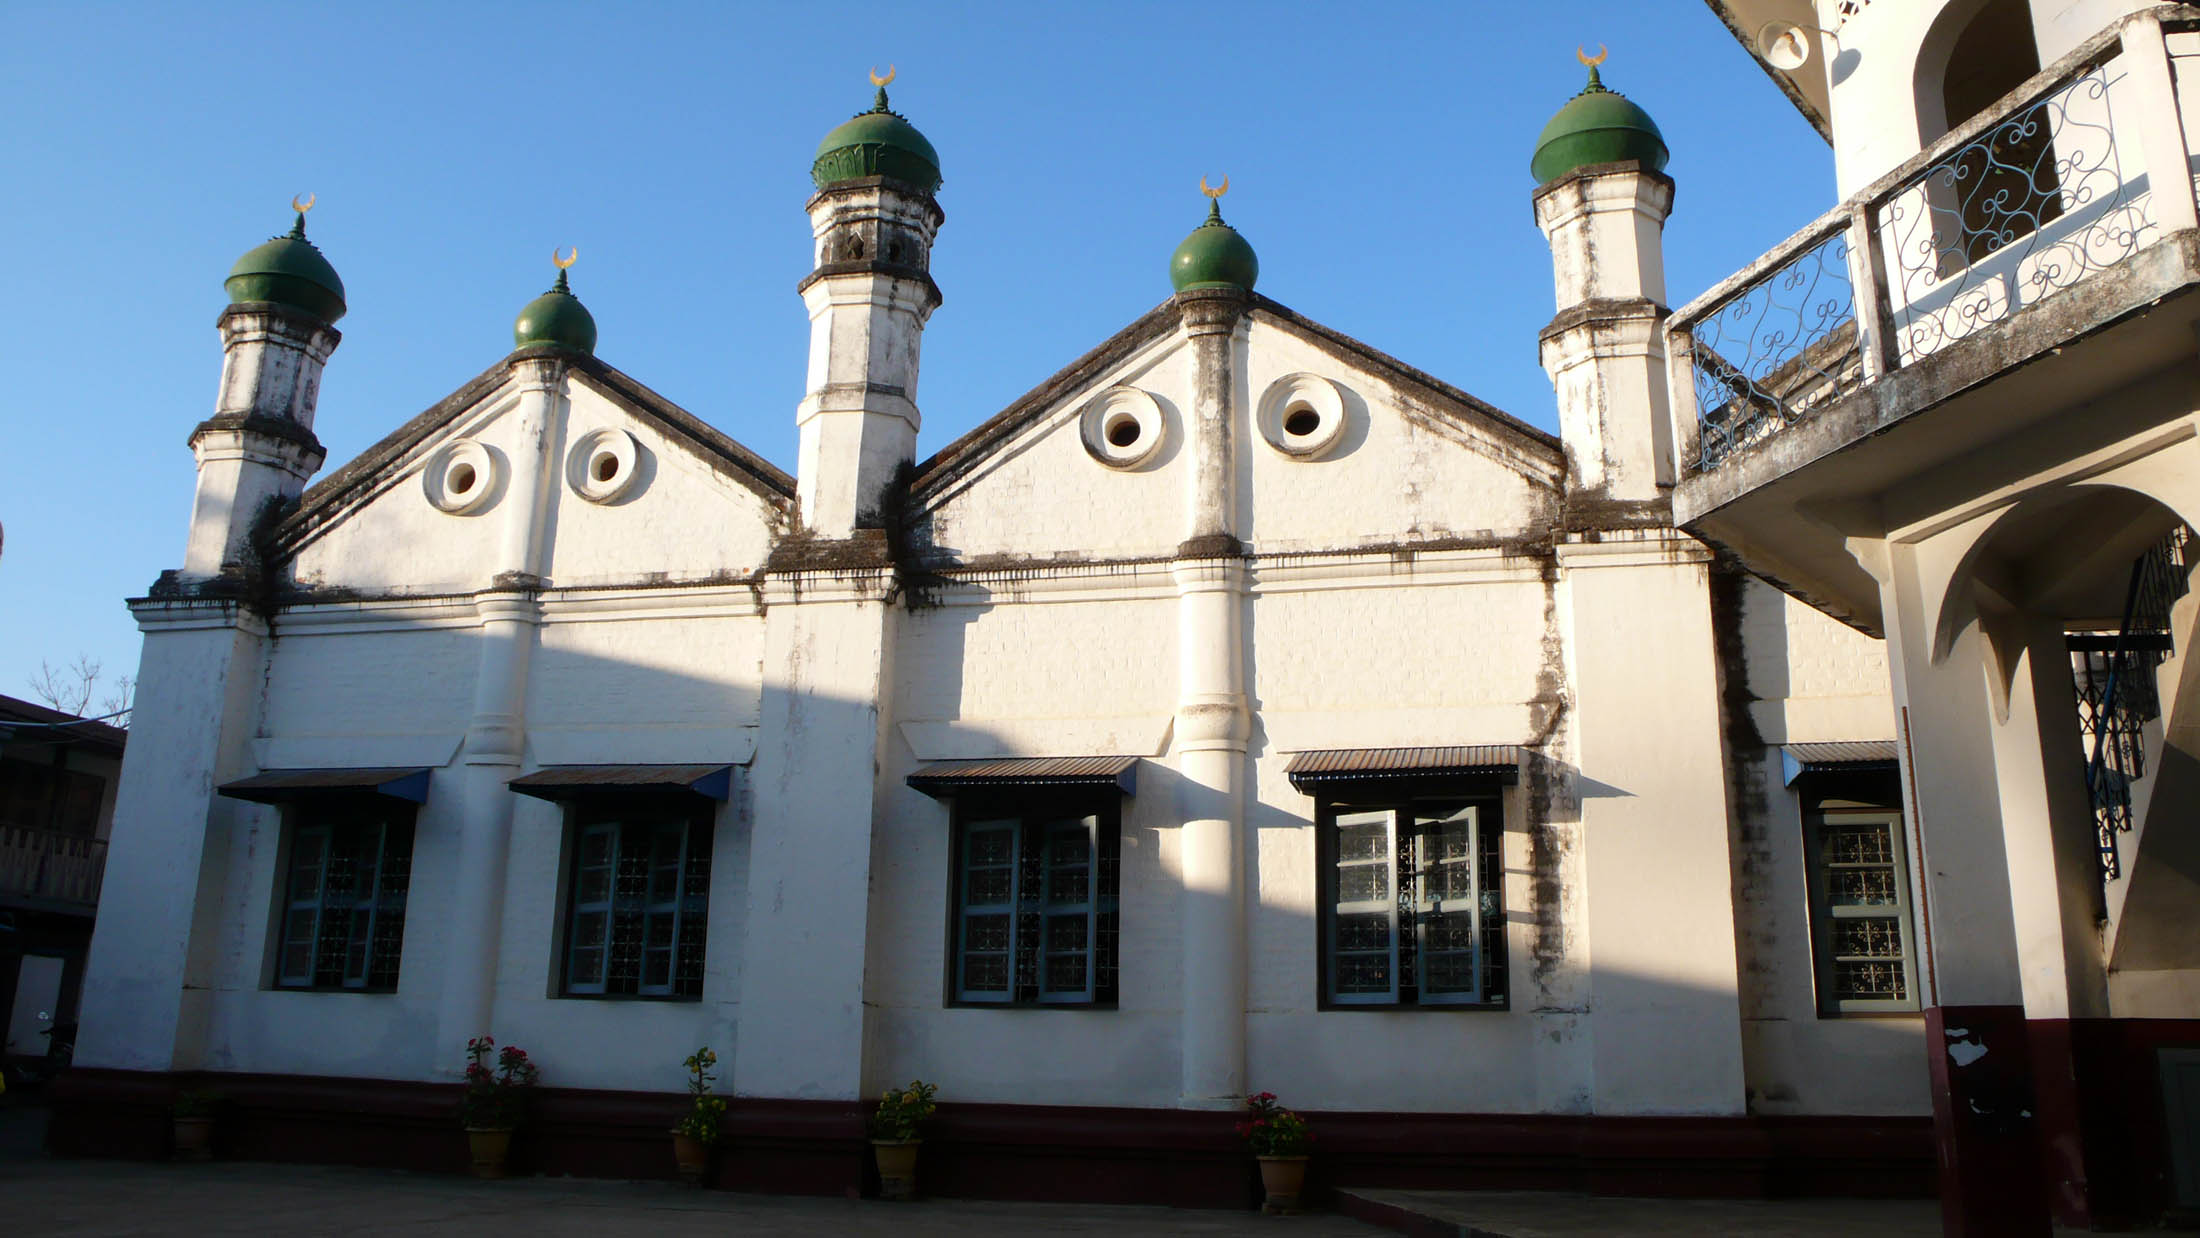 kenmosque